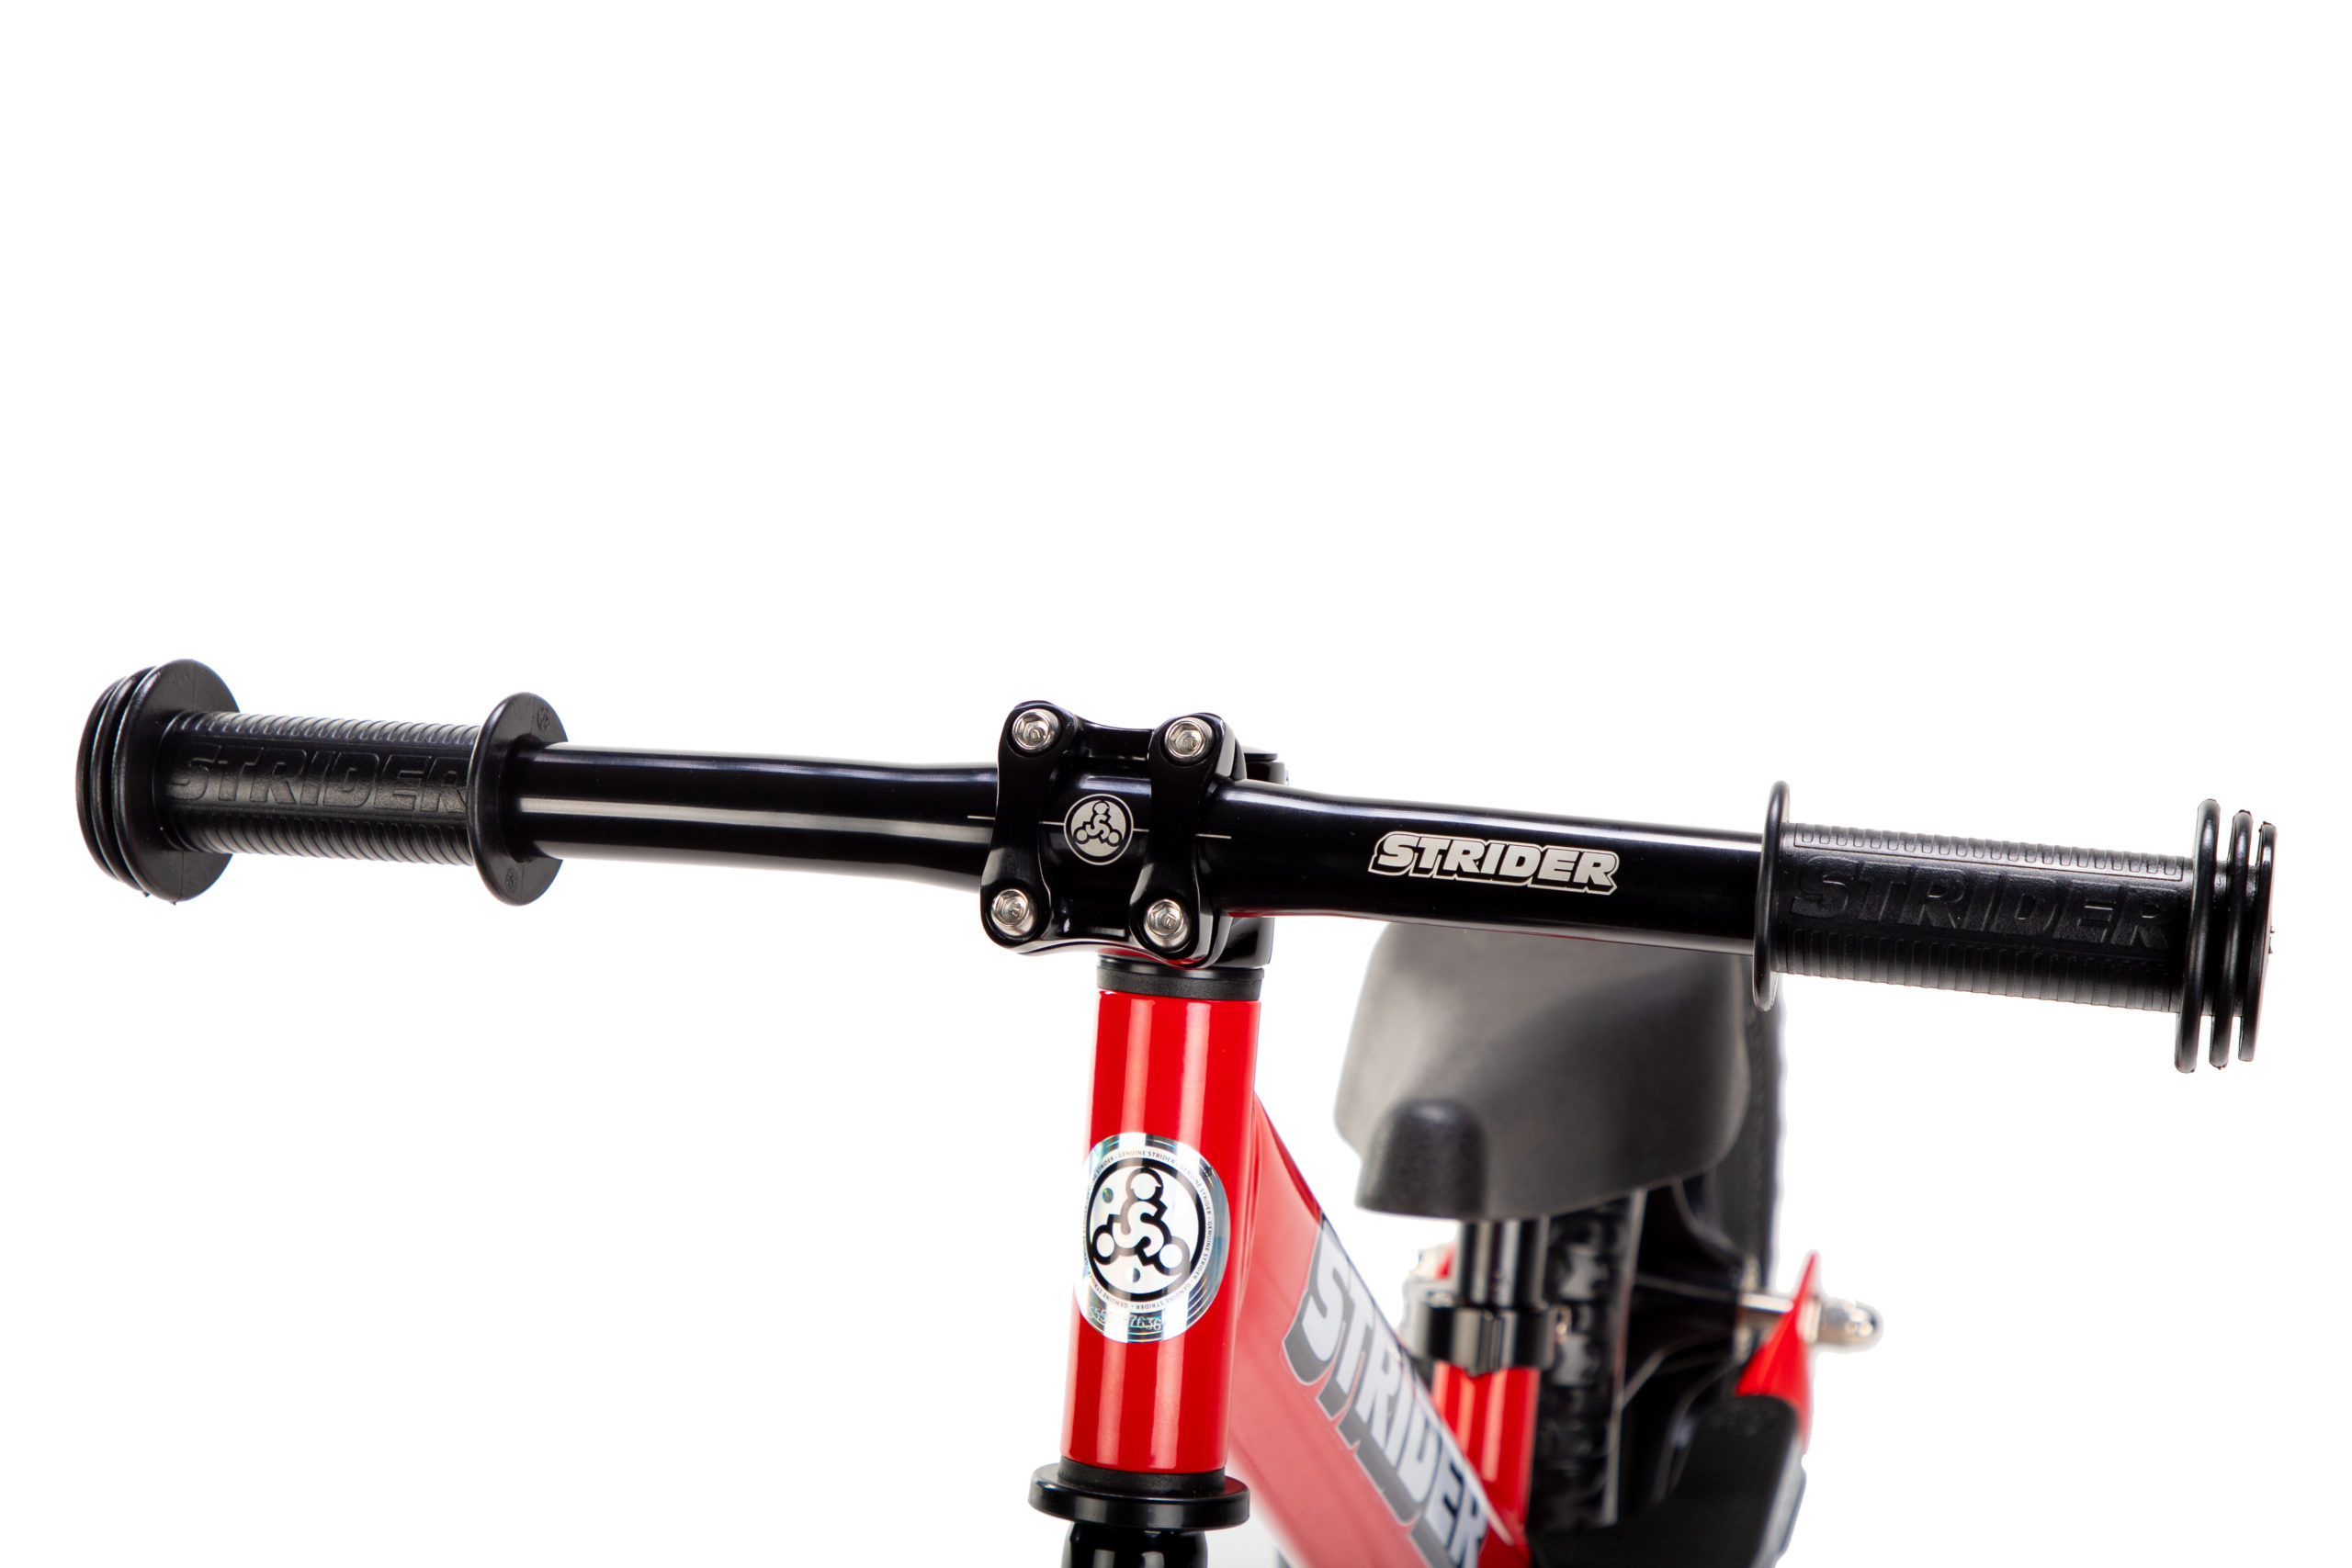 Studio image of Strider Aluminum Flat Handlebar with Grips on red 12 Sport - close-up angled view